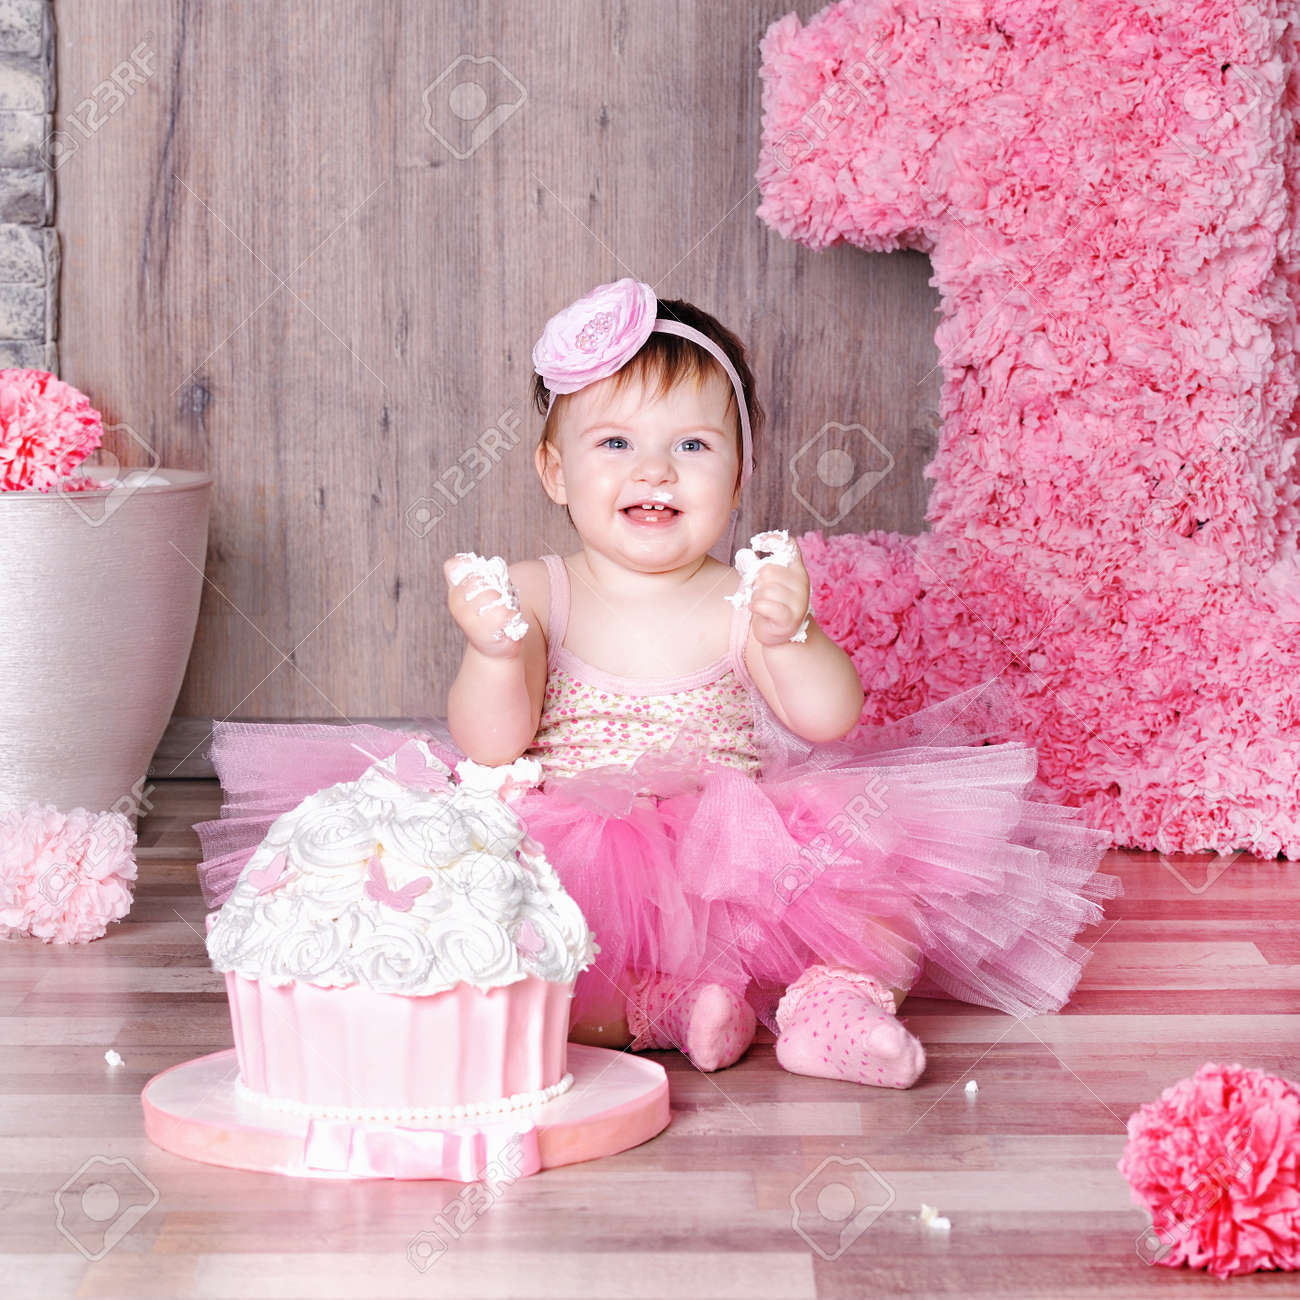 1 Year Baby Girl In Pink Dress With Her First Birthday Cake Stock Photo Picture And Royalty Free Image Image 86750094